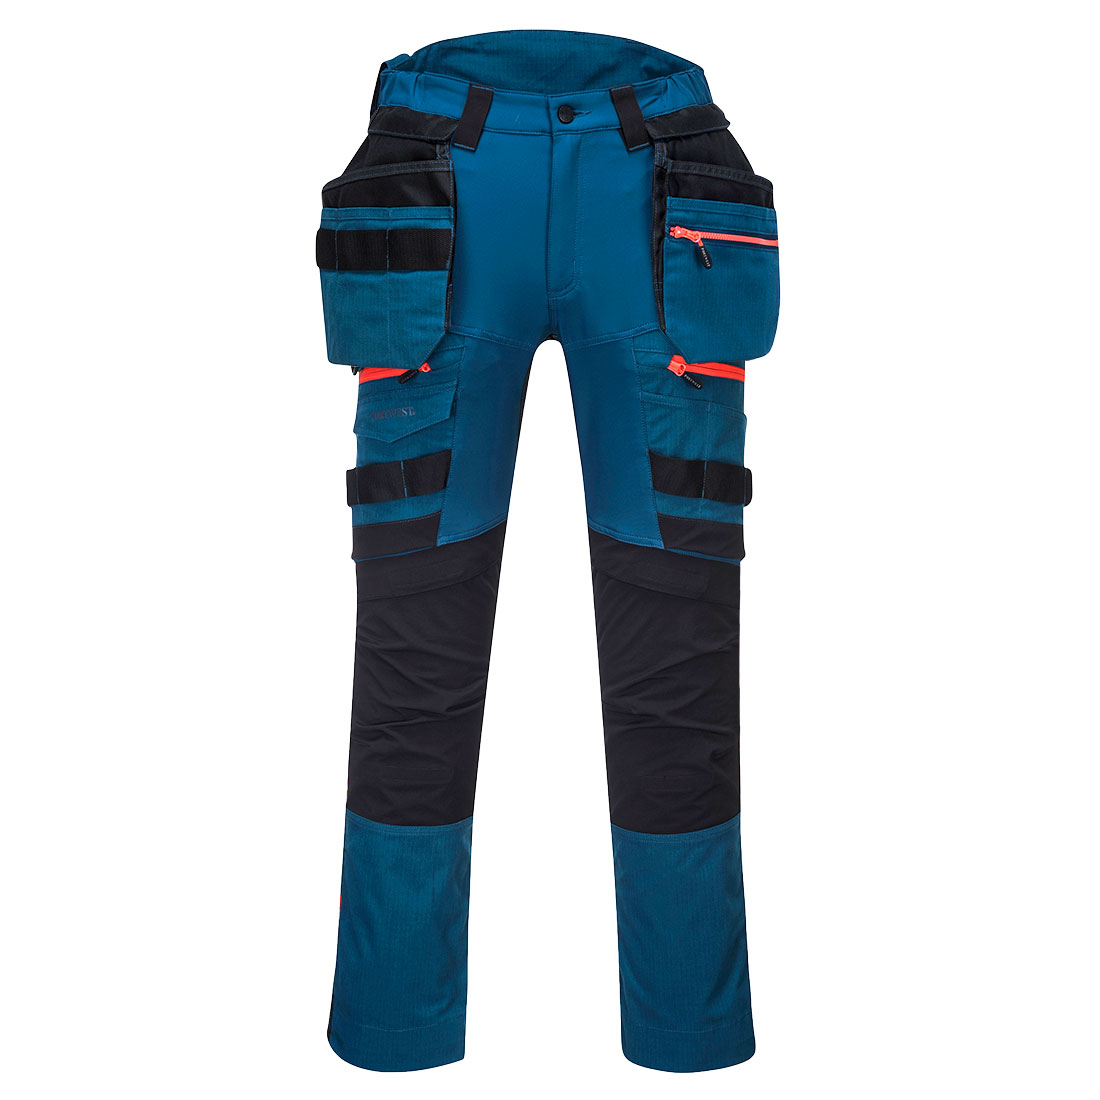 DX4 Holster Trousers Metro Blue 28R